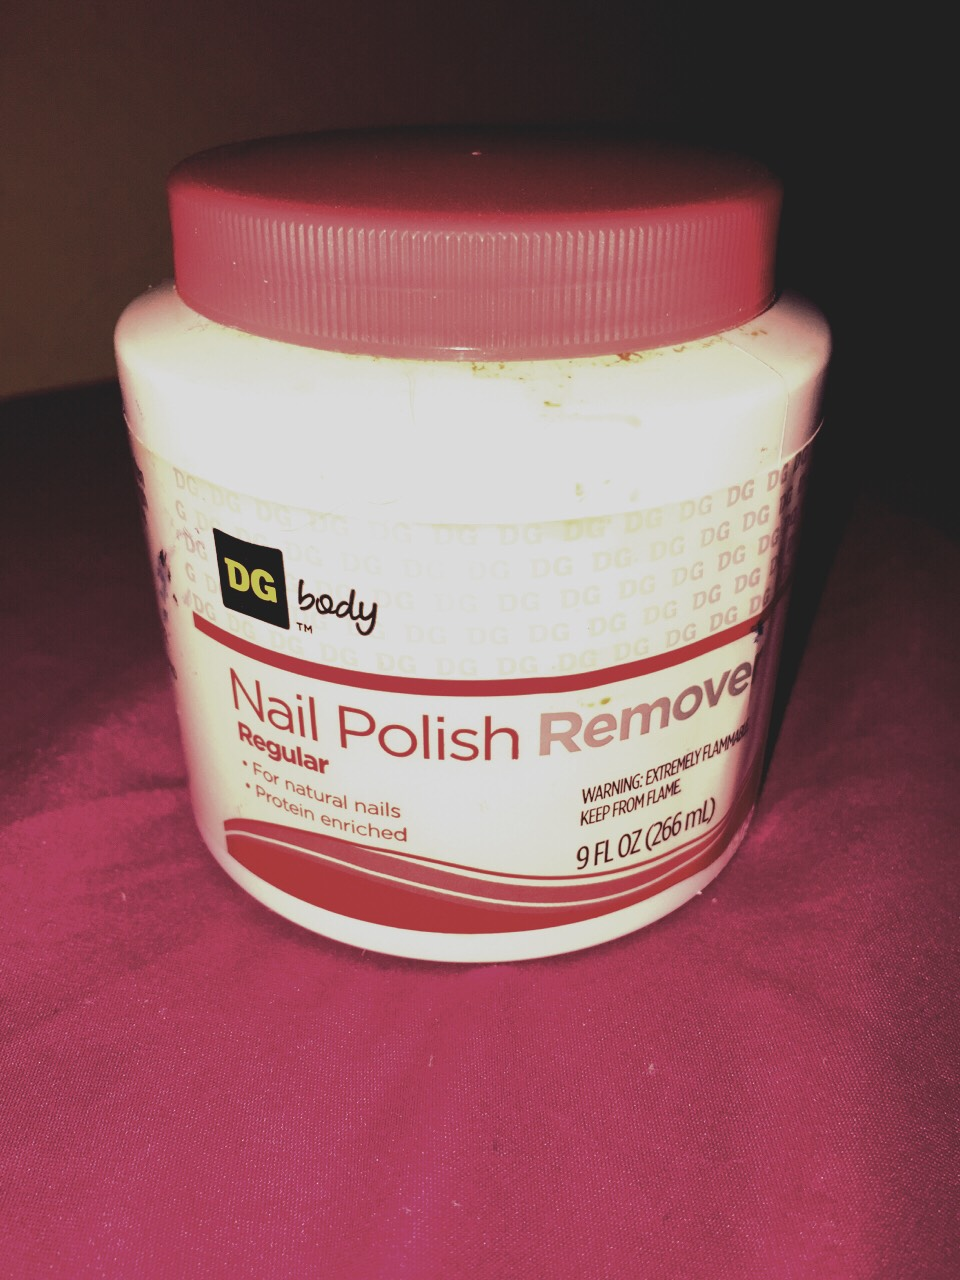 If the feel of cotton touching your nails bothers you or you need to get your paint off quickly, use a nail polish remover like this. You just stick your nails in and out a few times and it removes it.